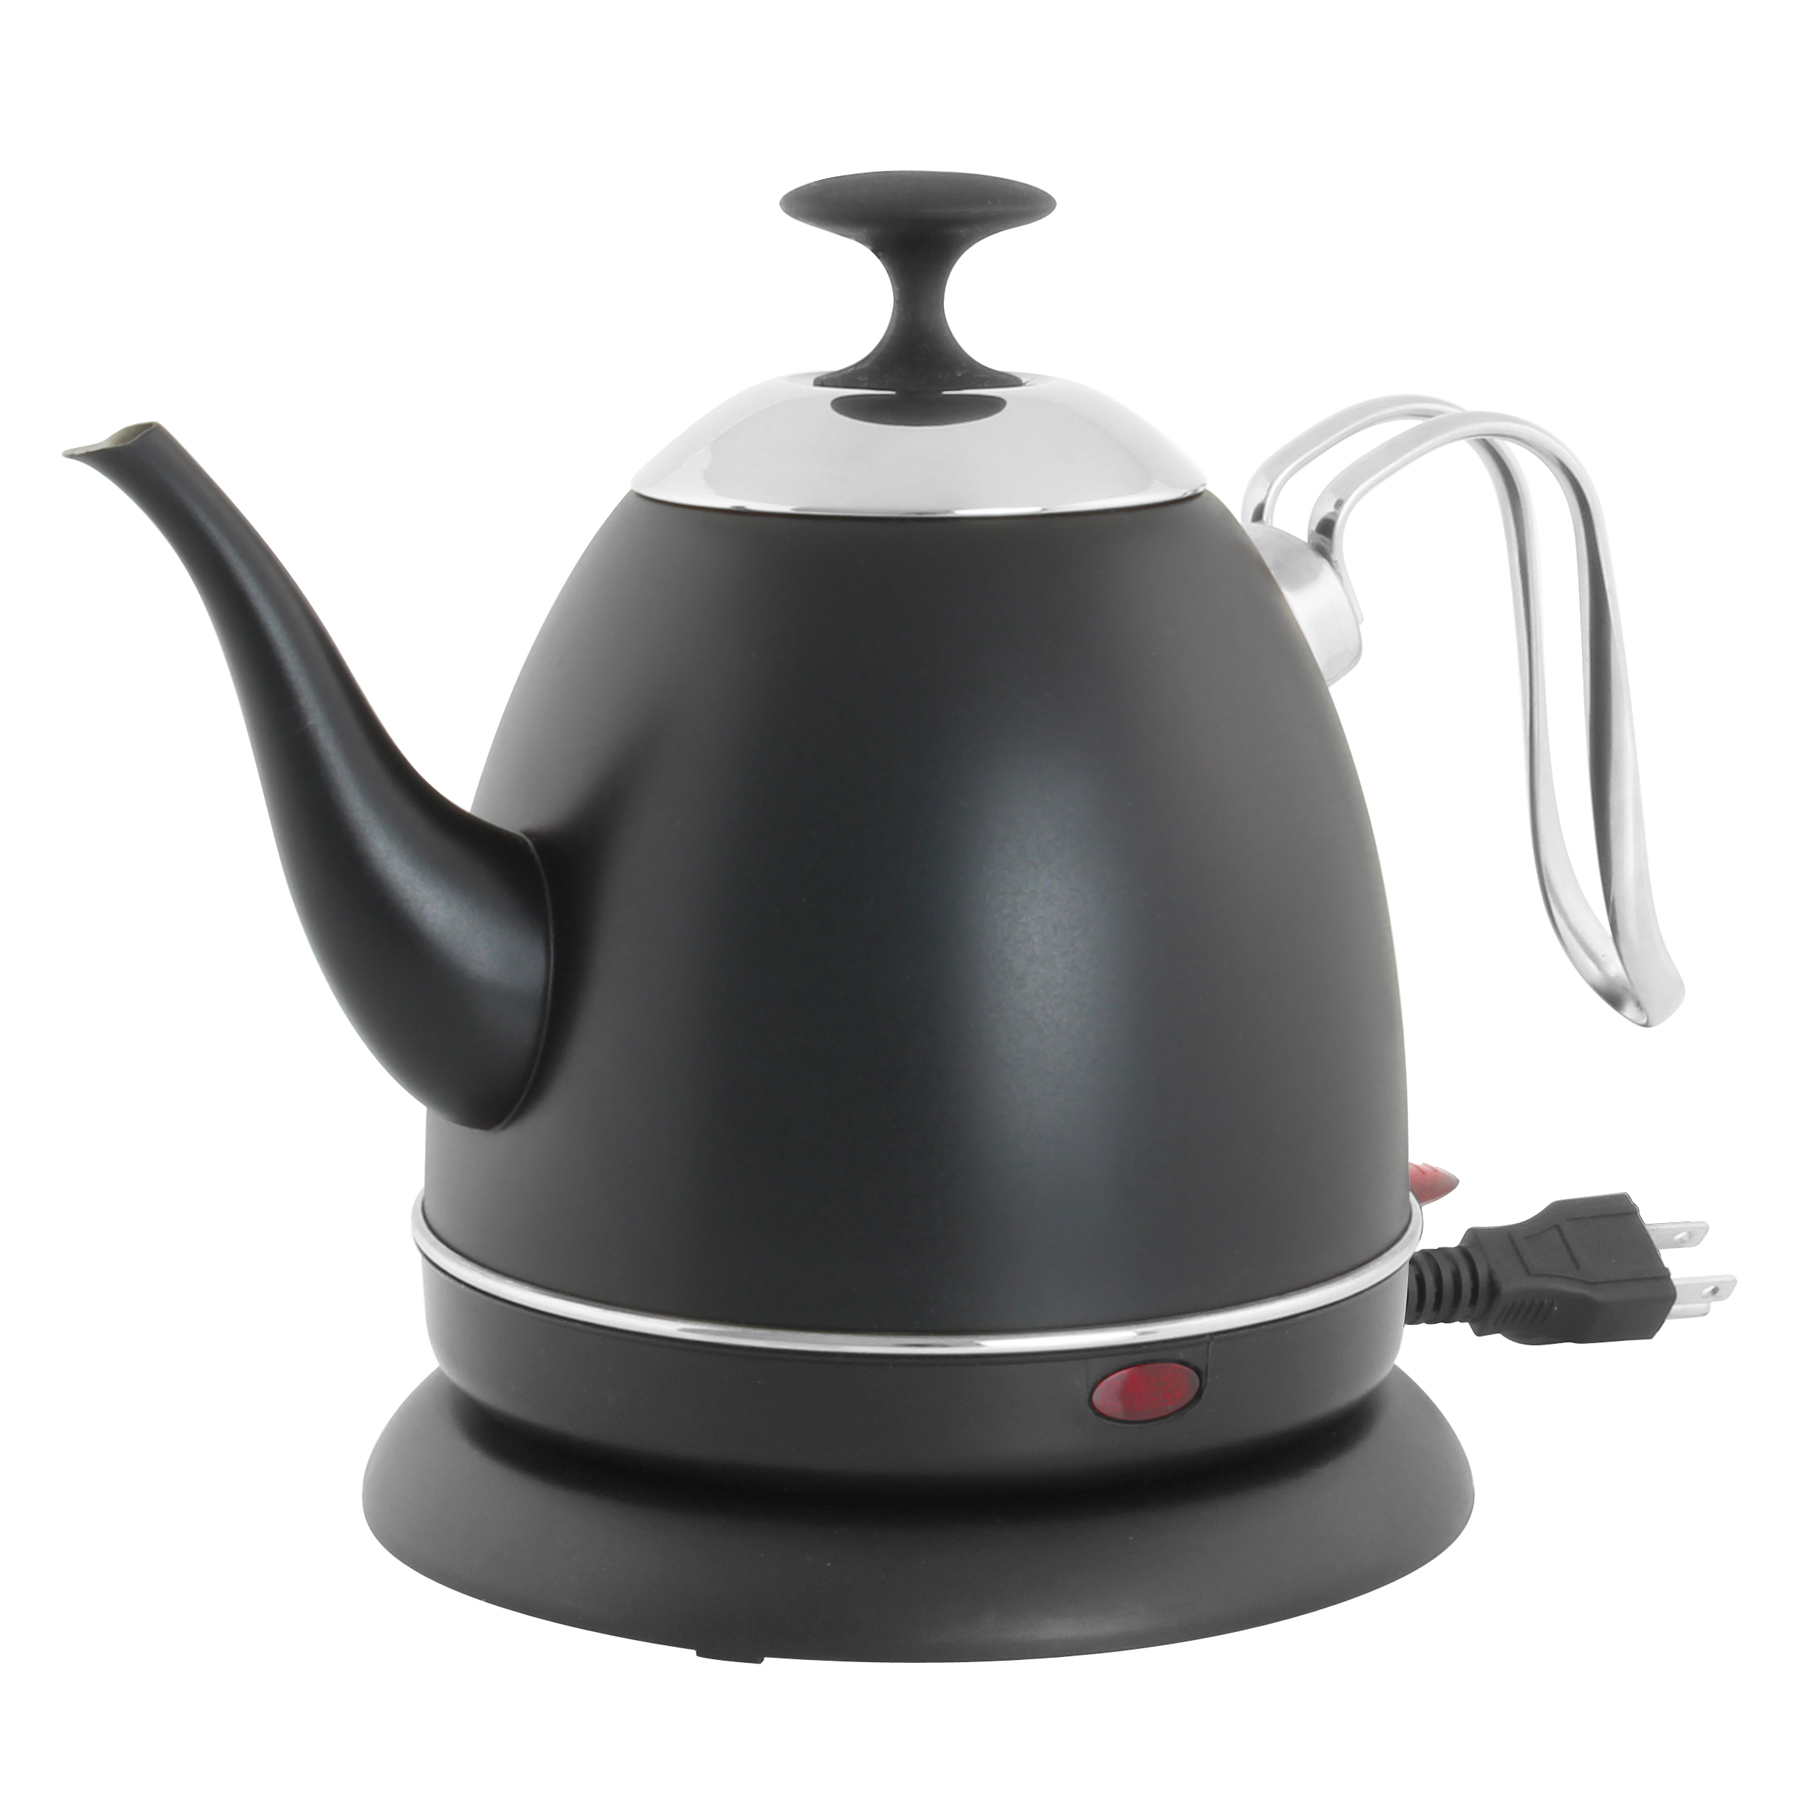 Chantal Ryder Electric Water kettle Matte Black finish NEW ITEM